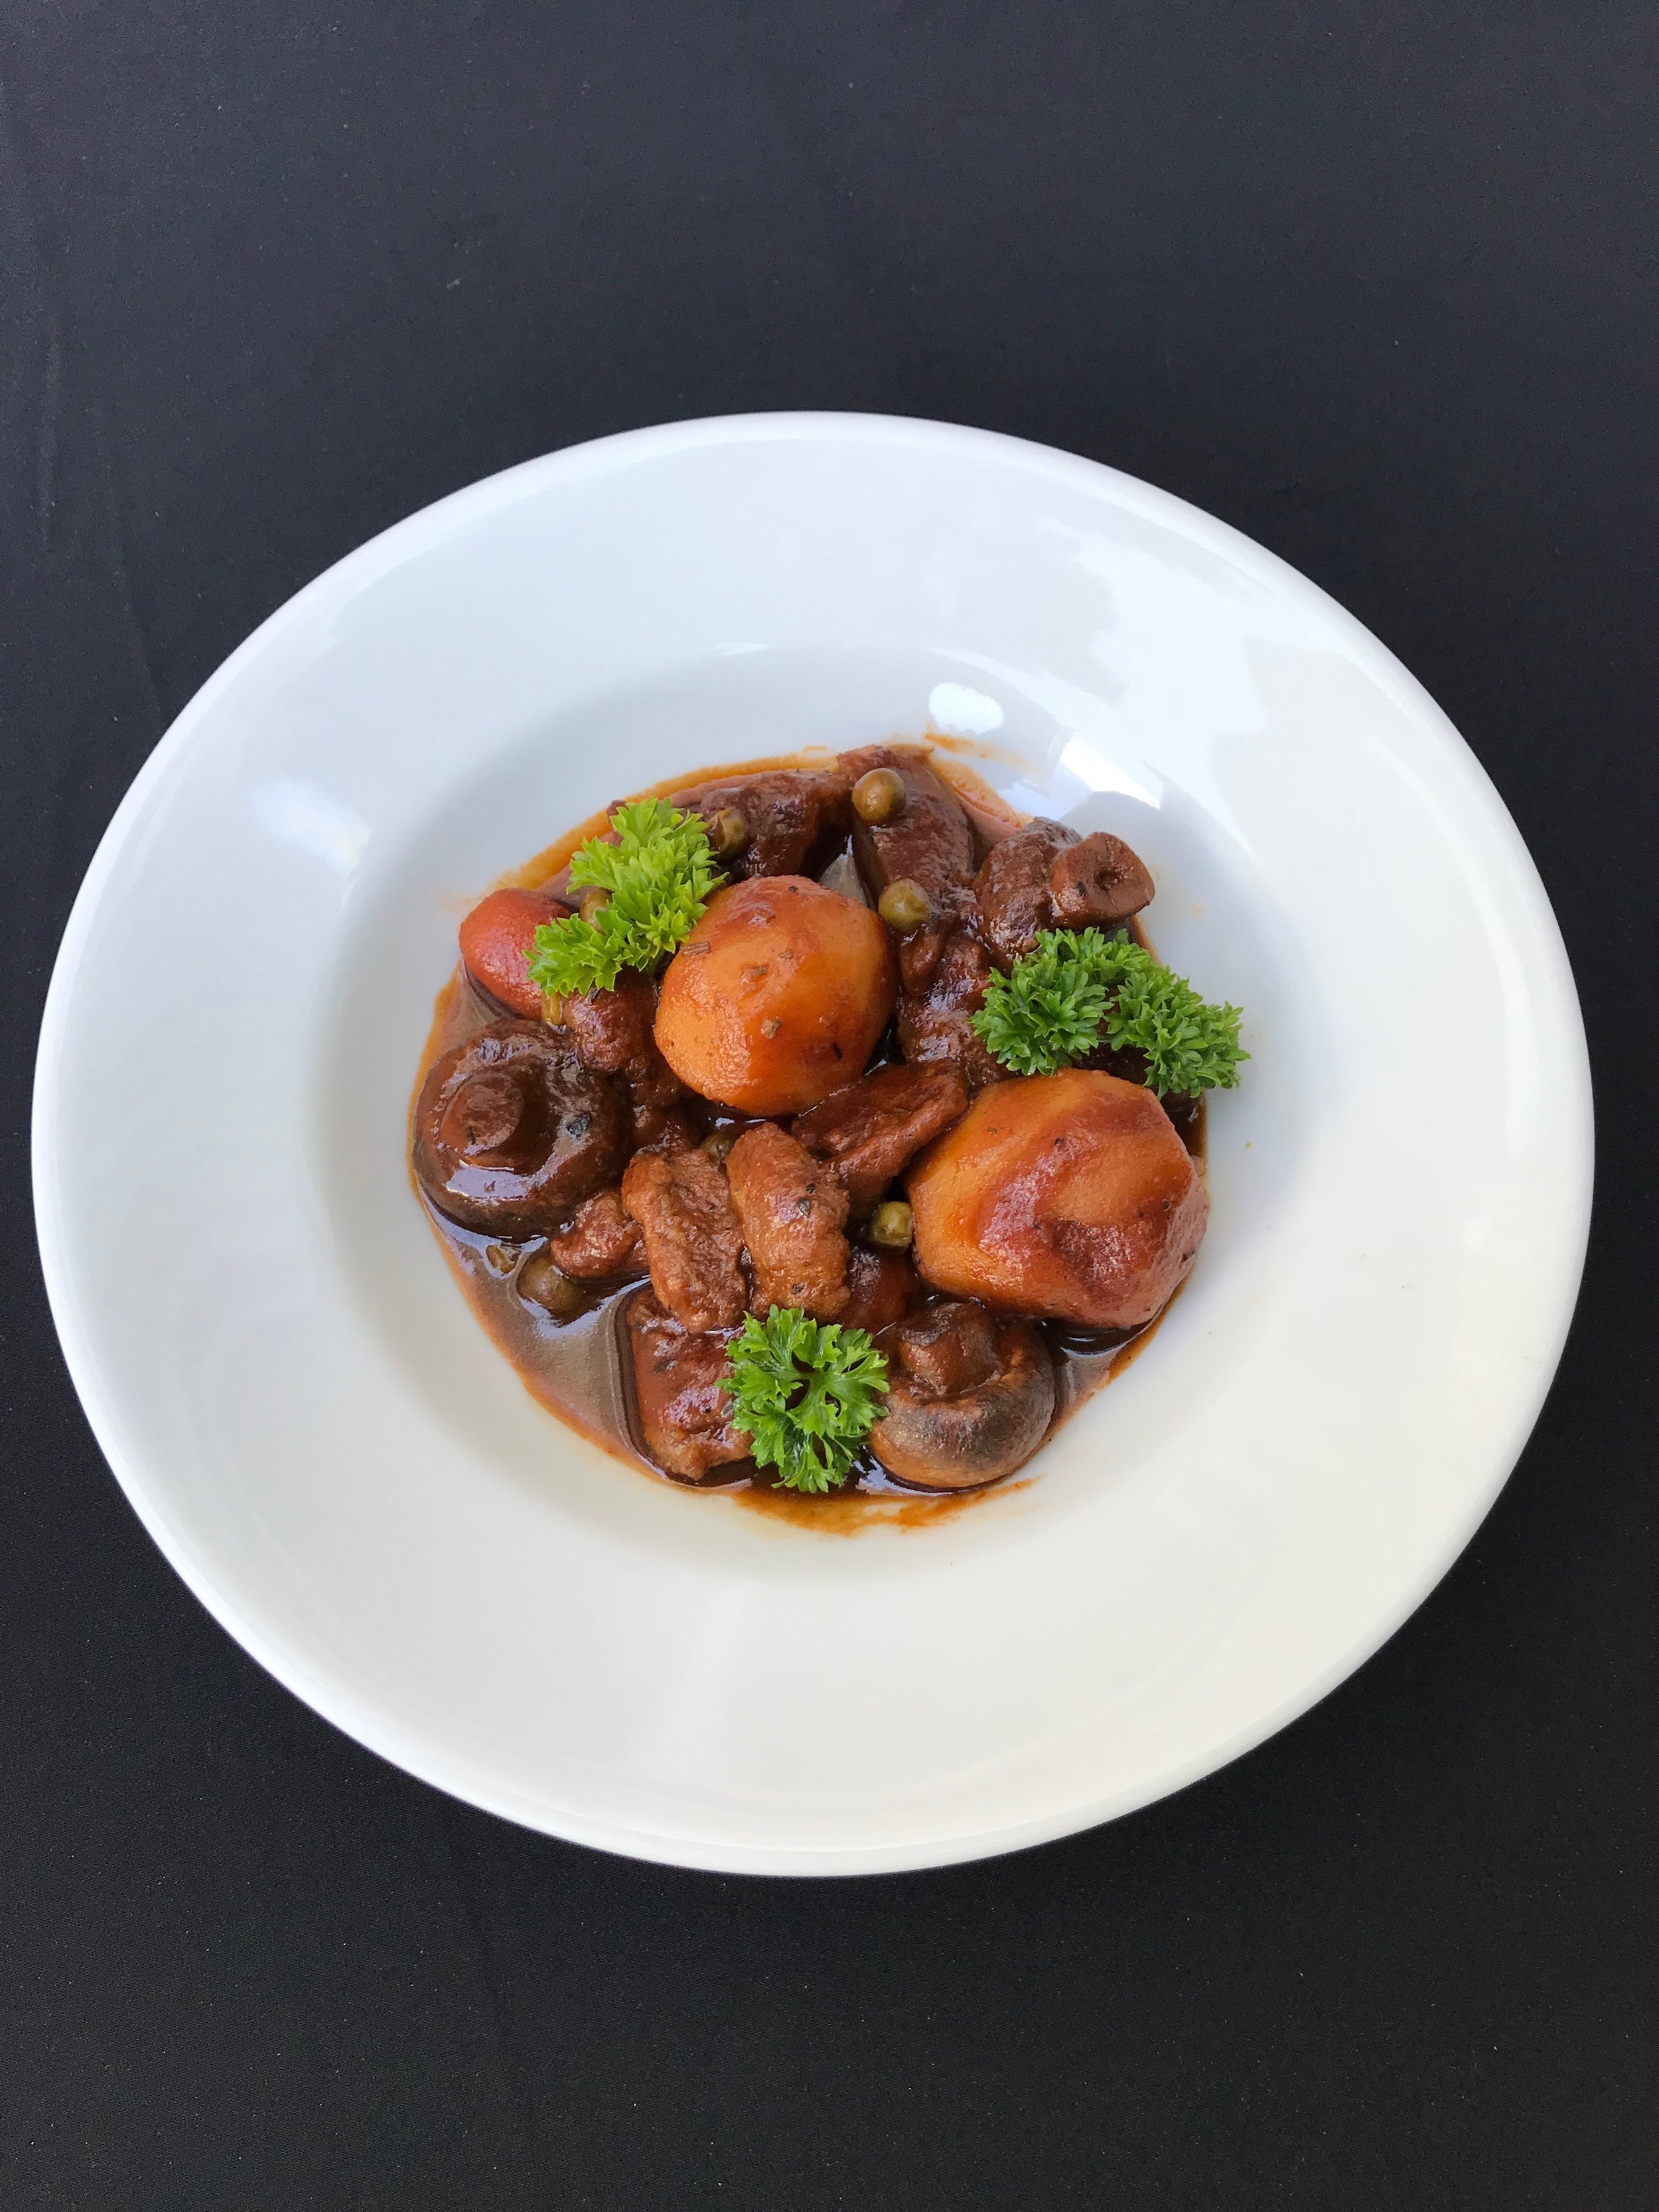 - Guinness Lamb StewTraditional Irish stew with lamb, carrots, rosemary, potatoes, onions, and Guinness